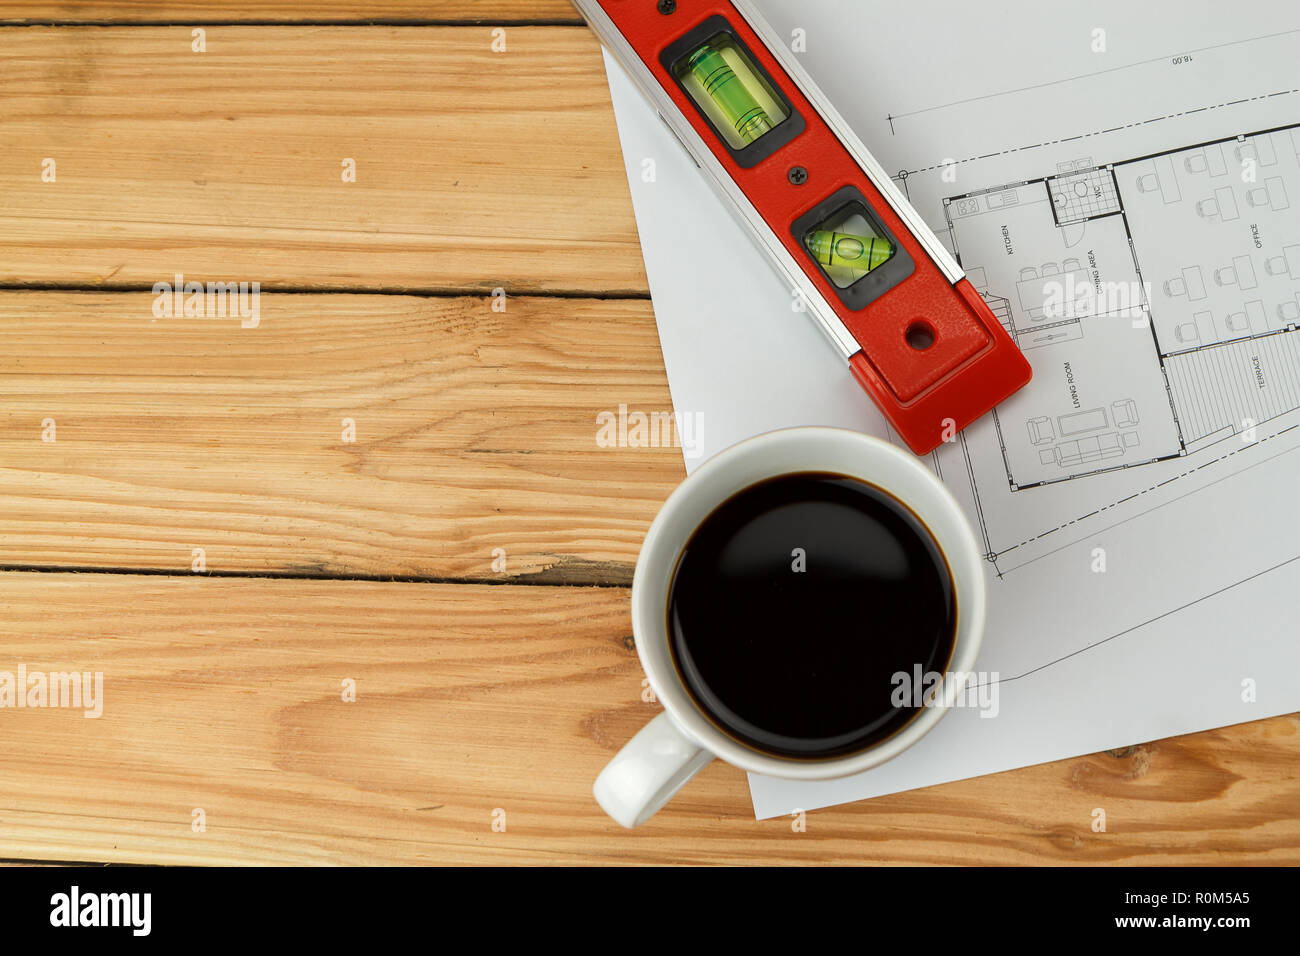 Cup of coffee with measurement tool and blueprint